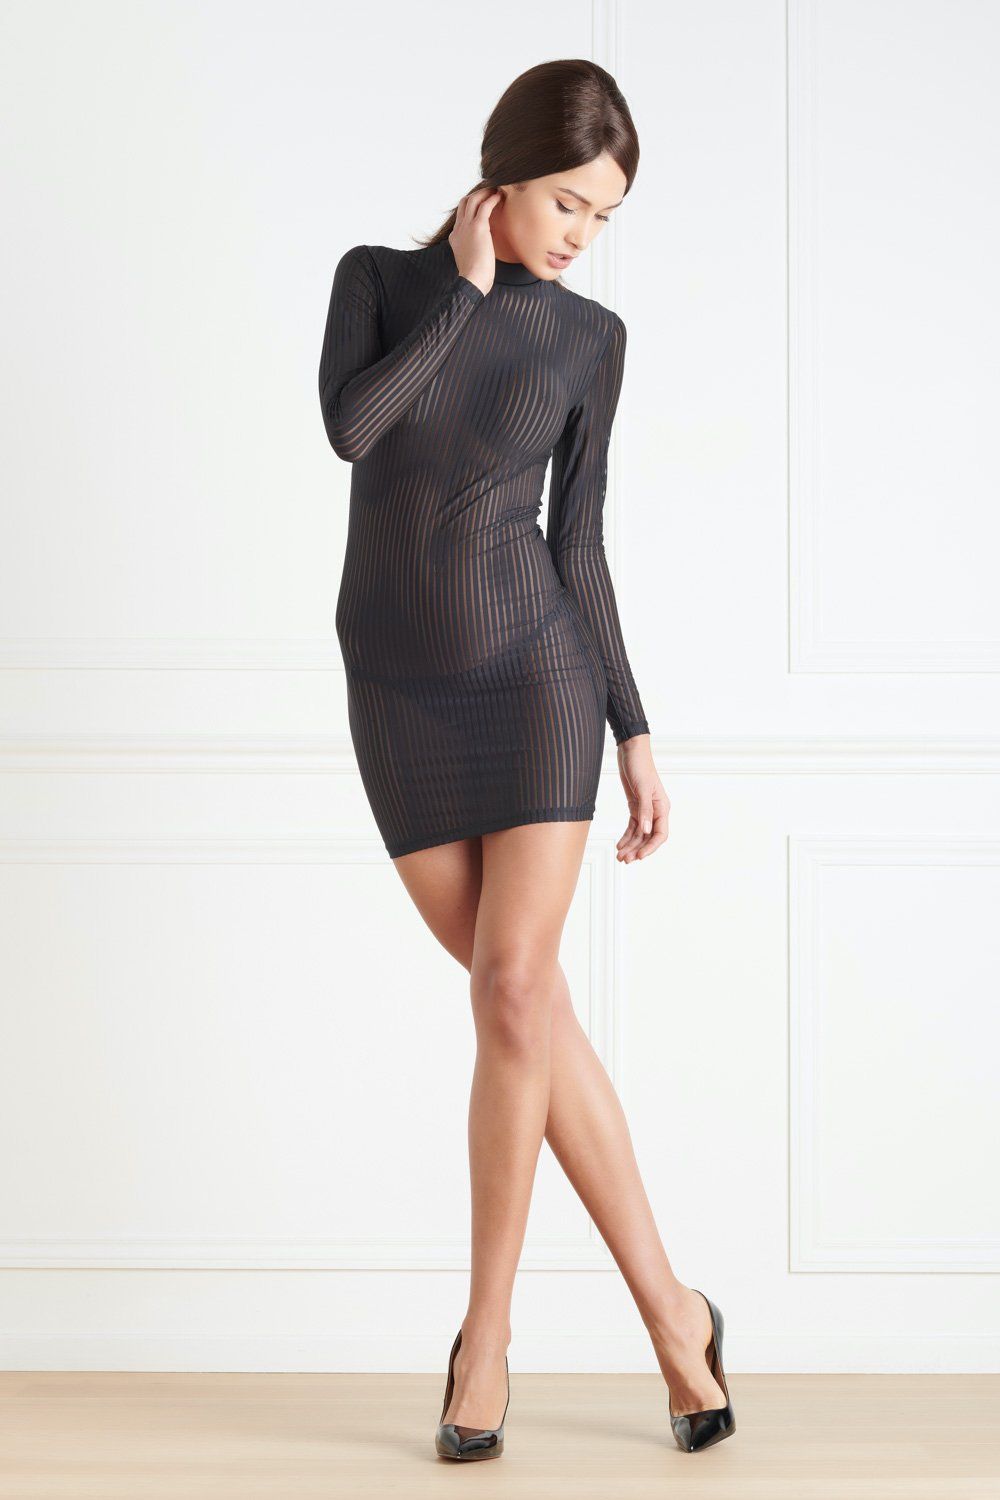 Maison Close Bande à Part Long Sleeved Dress - The Hosiery Box